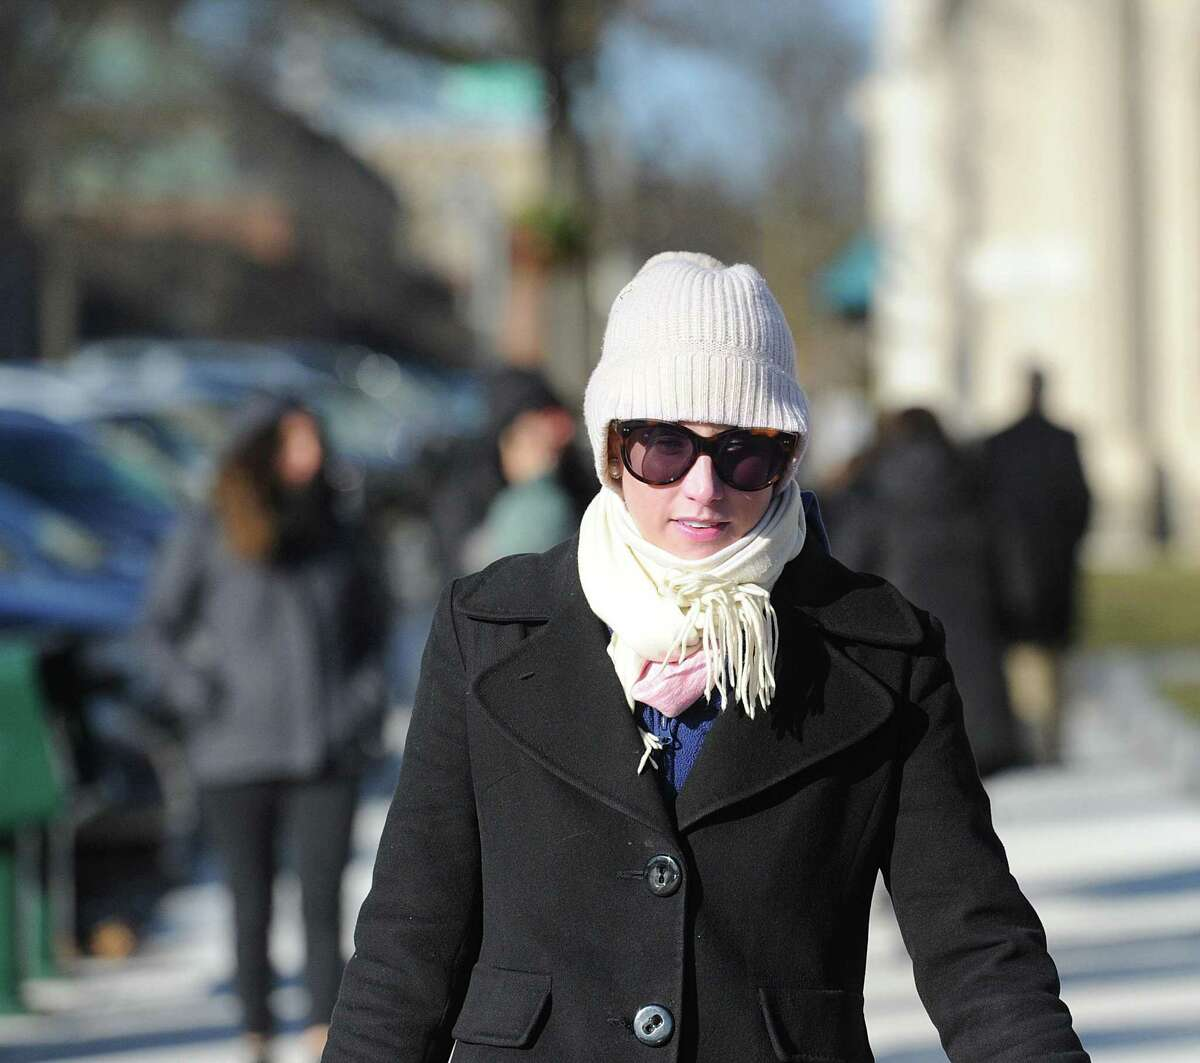 Photos of people walking in the cold weather on Greenwich Avenue in Greenwich, Conn., Tuesday, Dec. 26, 2017. The National Weather Service is forecasting even colder temperatures throughout the week with single digits expected during the overnight on Wednesday, Thursday and Friday with a chance of snow on Friday and Saturday.